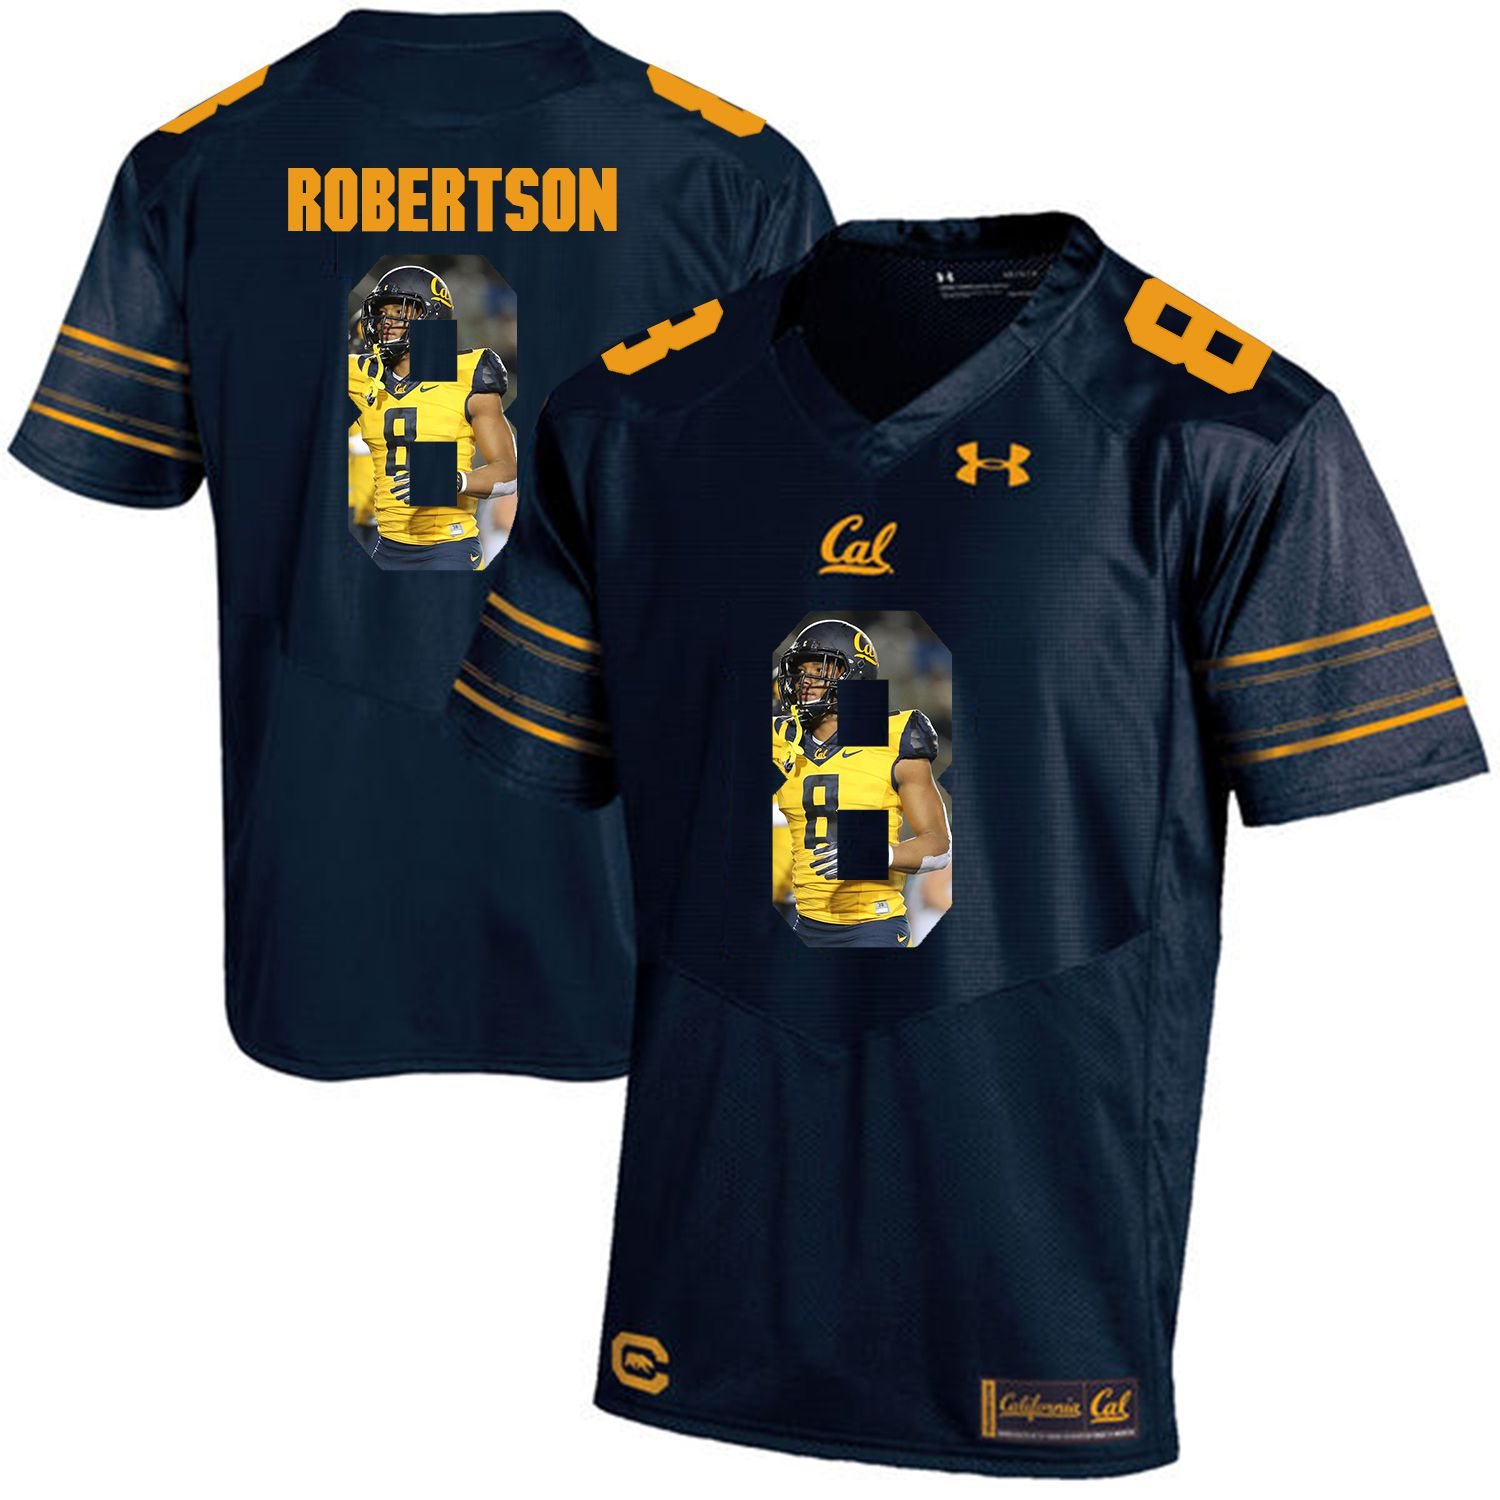 Men California Golden Bears 8 Demetris Robertson Dark blue Customized NCAA Jerseys1